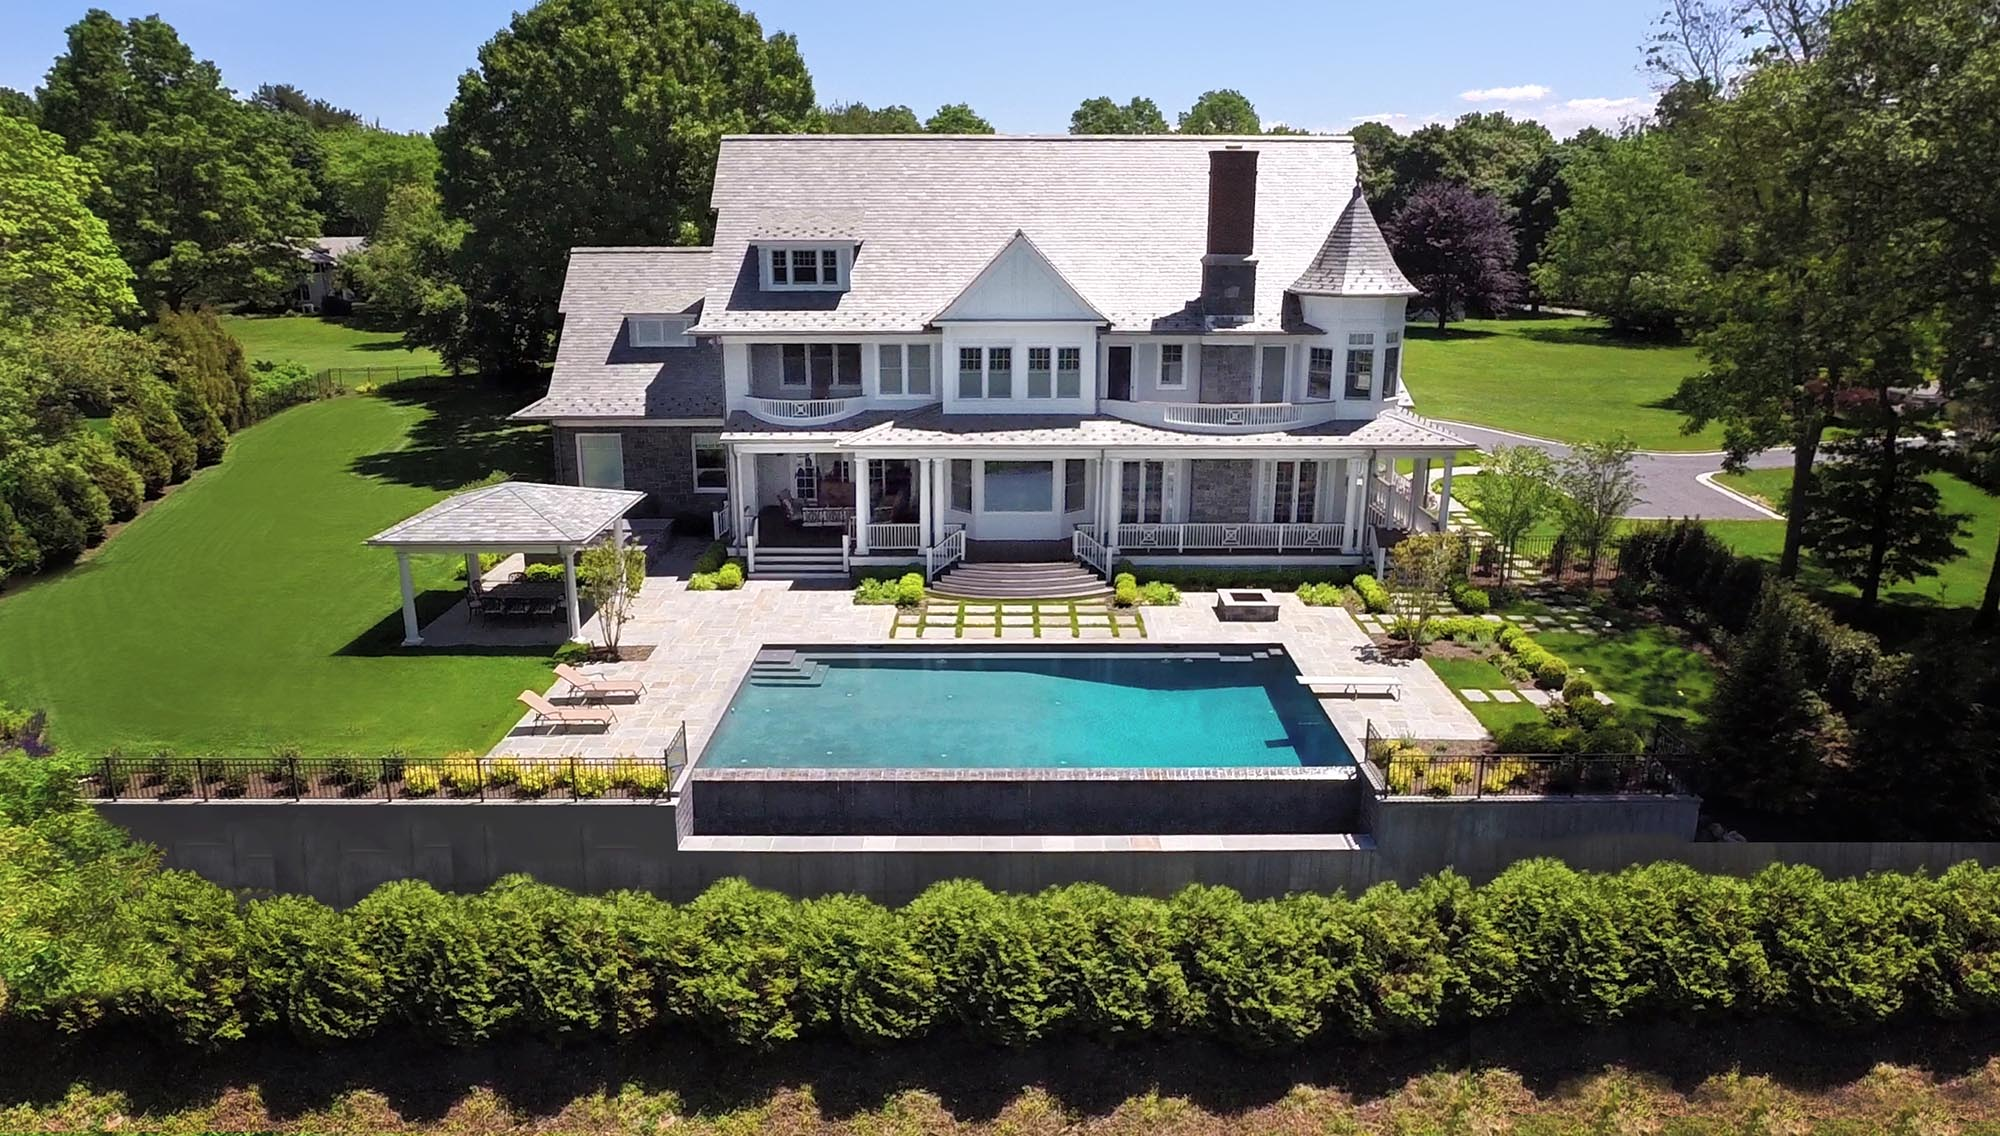 Queen Anne Revival, Cold Spring Harbor, long island, infinity pool, slat roof, cabana